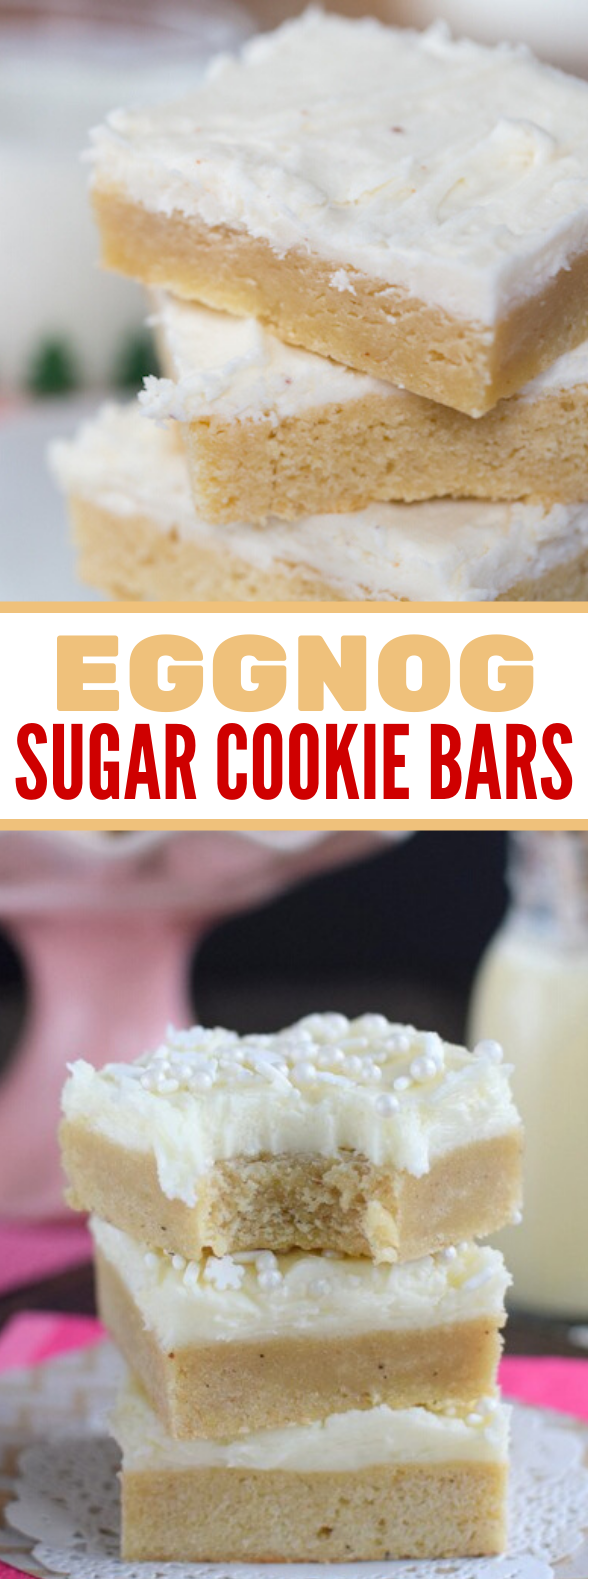 EGGNOG SUGAR COOKIE BARS #desserts #sweettreat